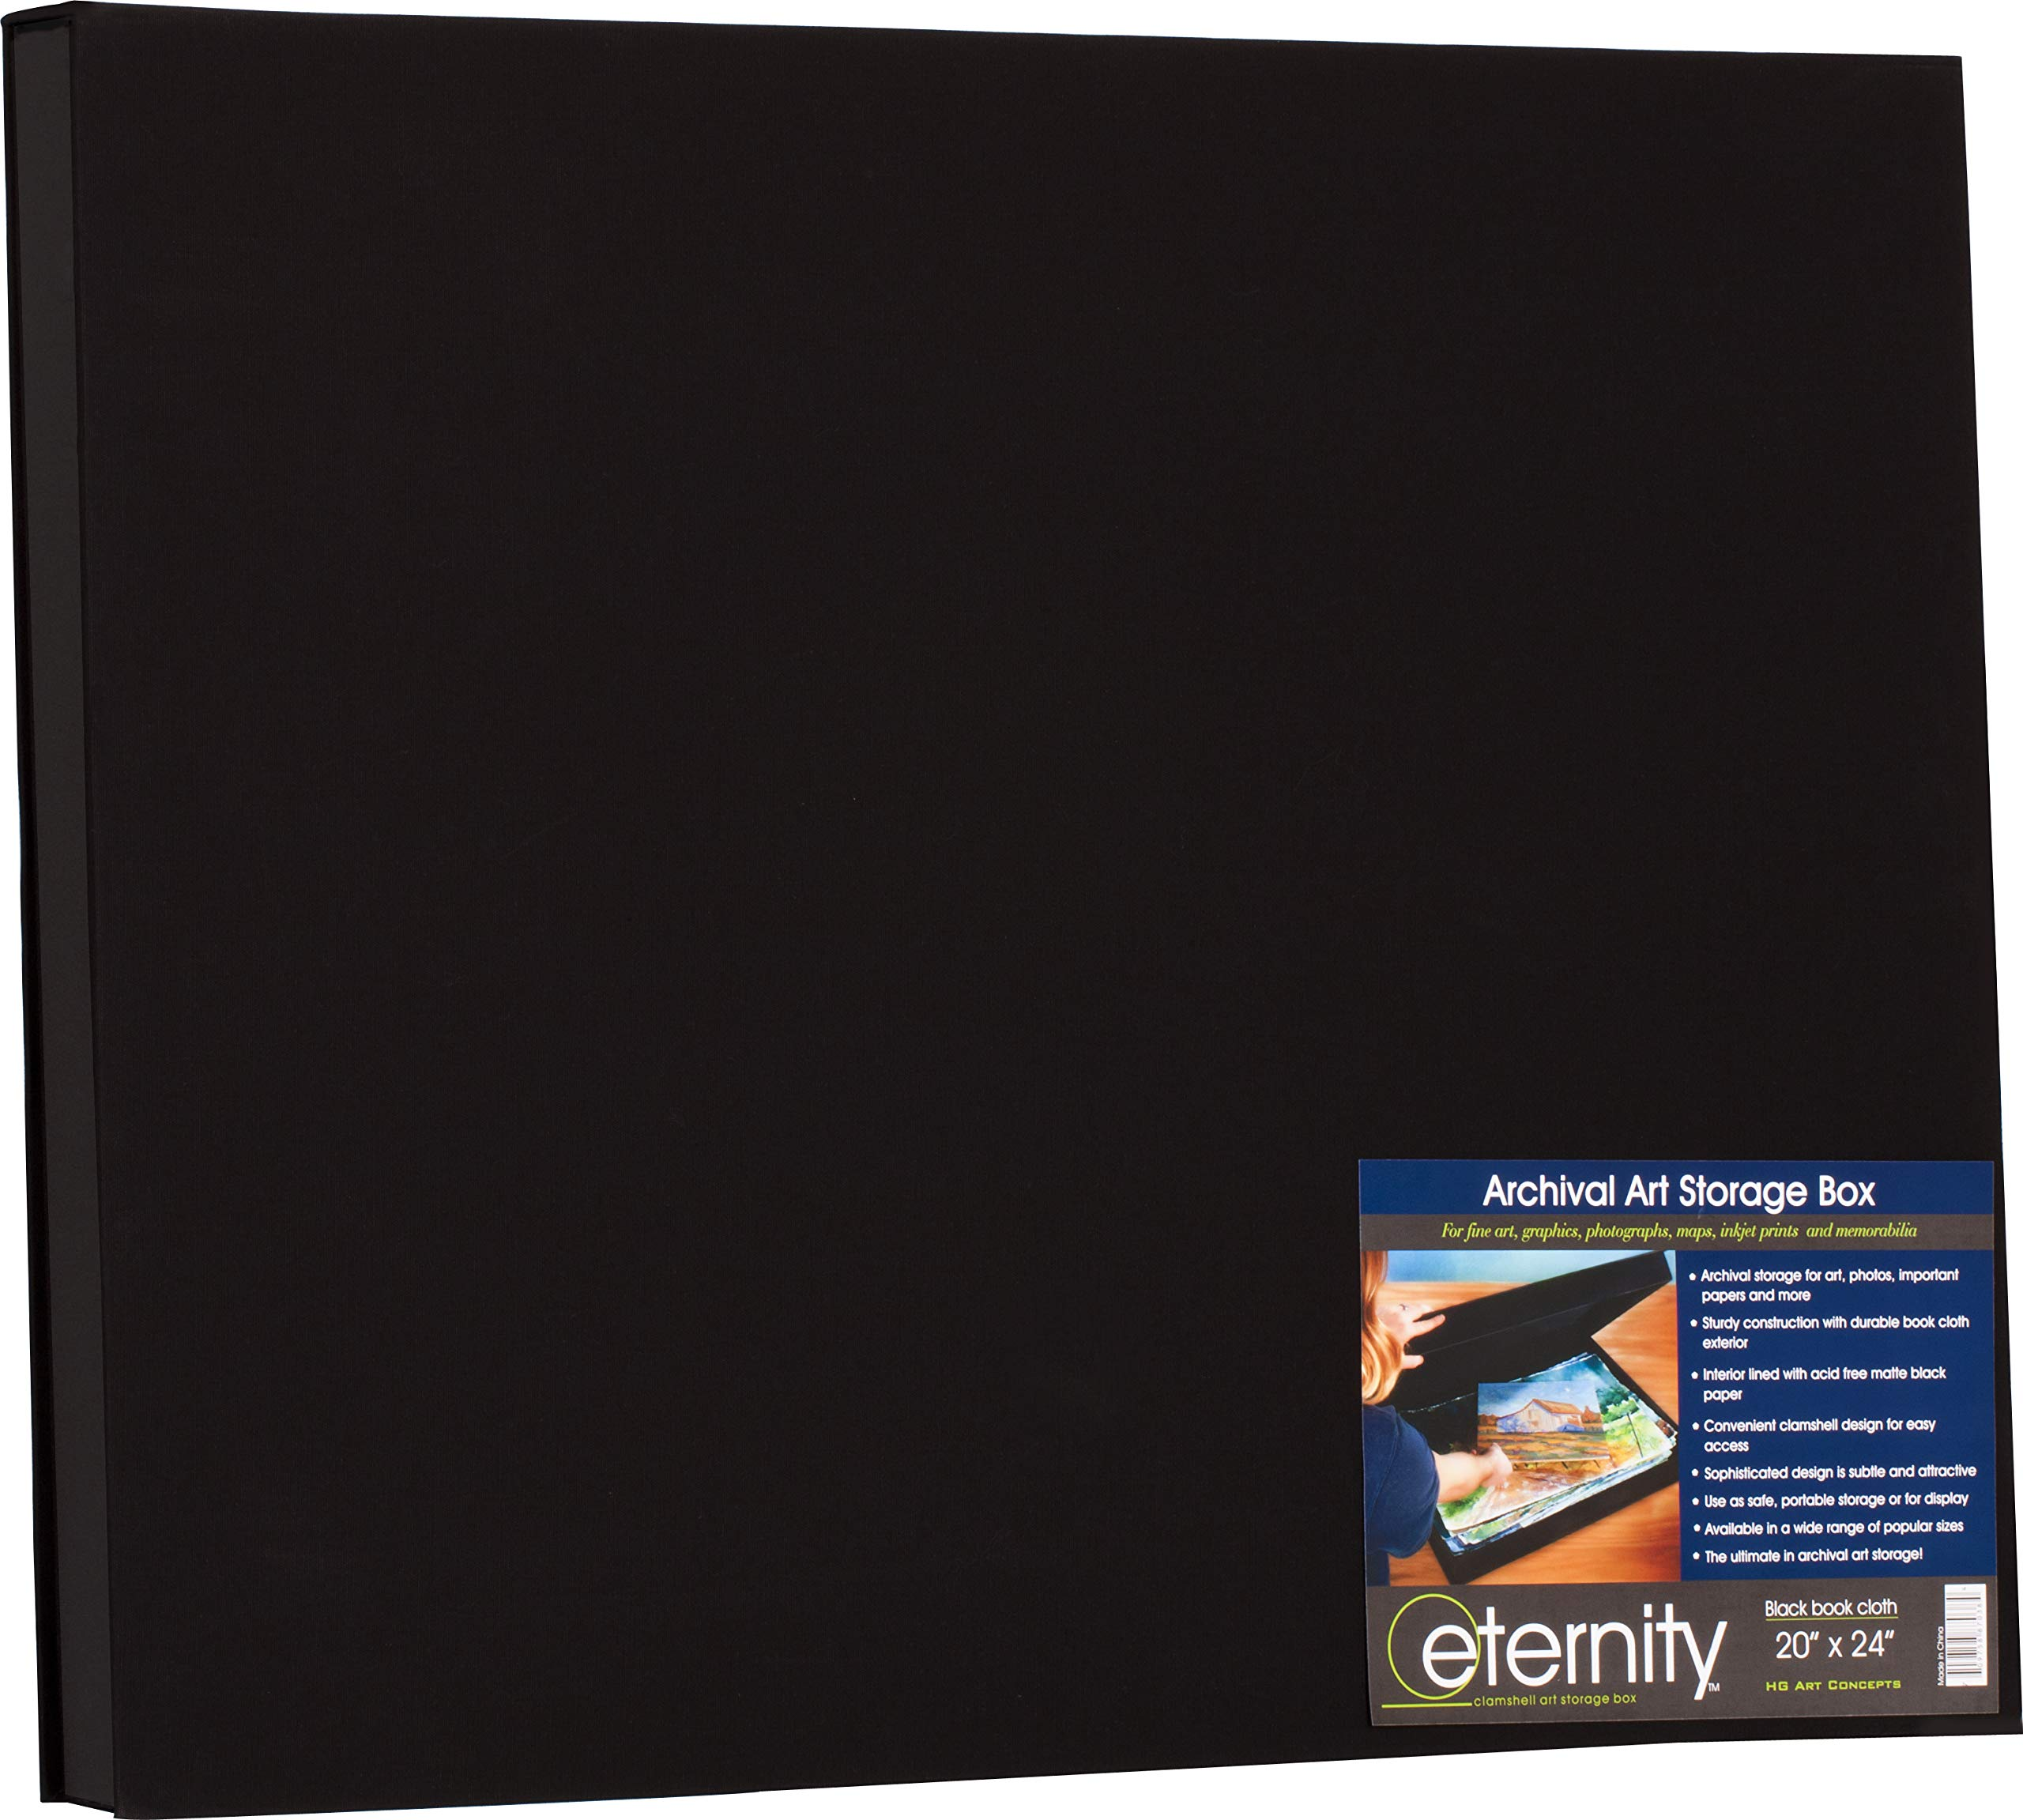 HG Concepts Art Photo Storage Box Eternity Archival Clamshell Box for Storing Artwork, Photos & Documents Deluxe Acid-Free Sturdy & Lined with Archival Paper - [Black - 20'' x 24'']